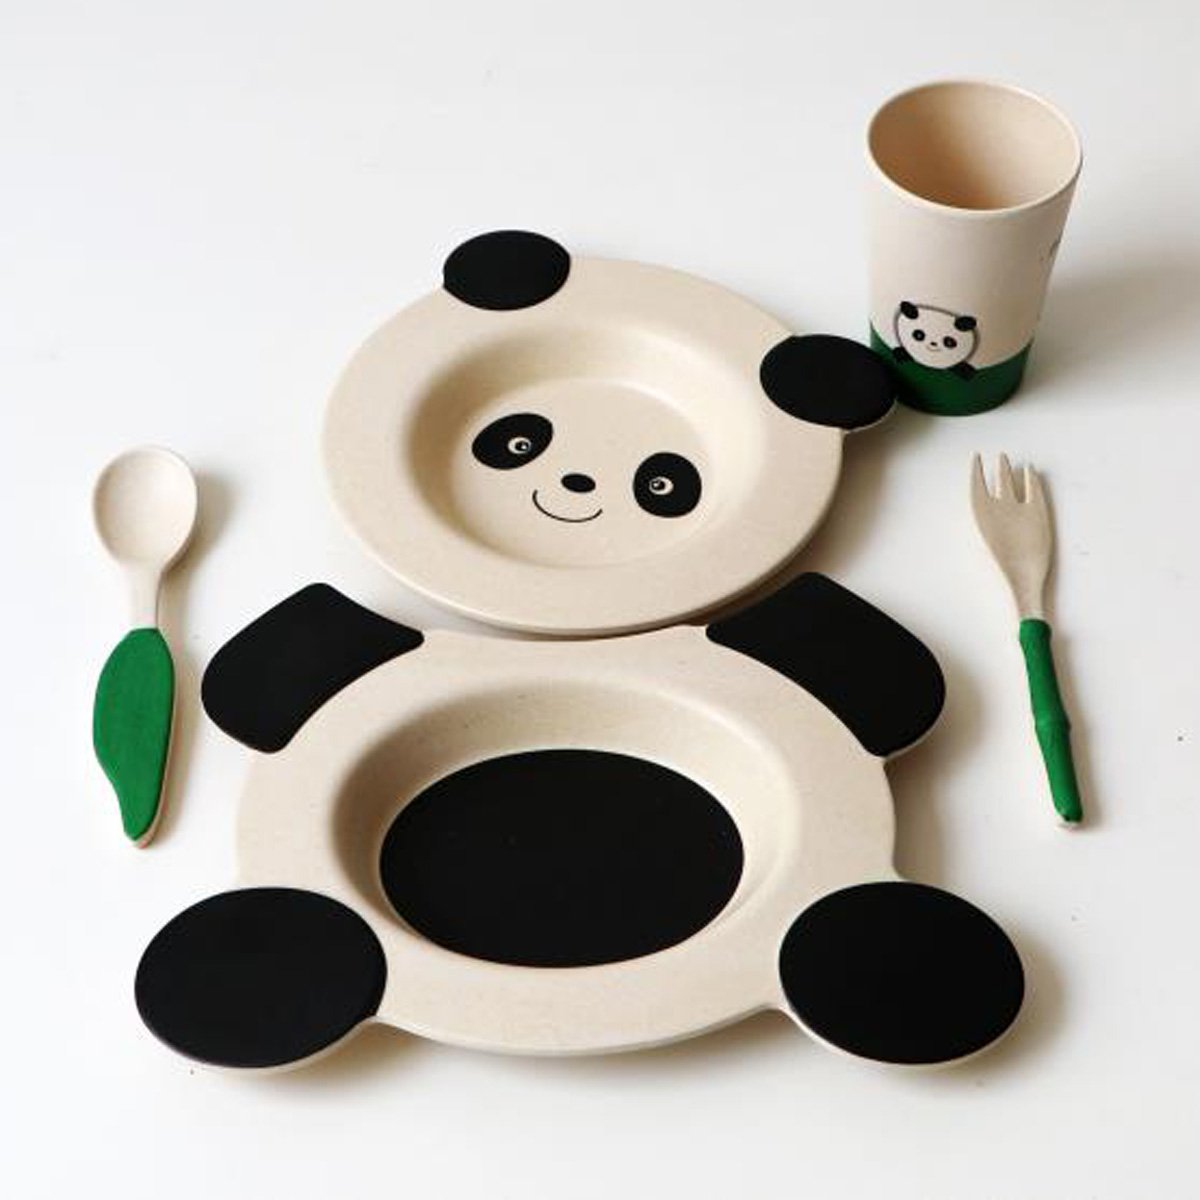 Yxisn5 Kids Tableware/Dinnerware Set include dishes/bowl spoons plates cups fork 5 Piece Set cute panda style made by straw recycled materials